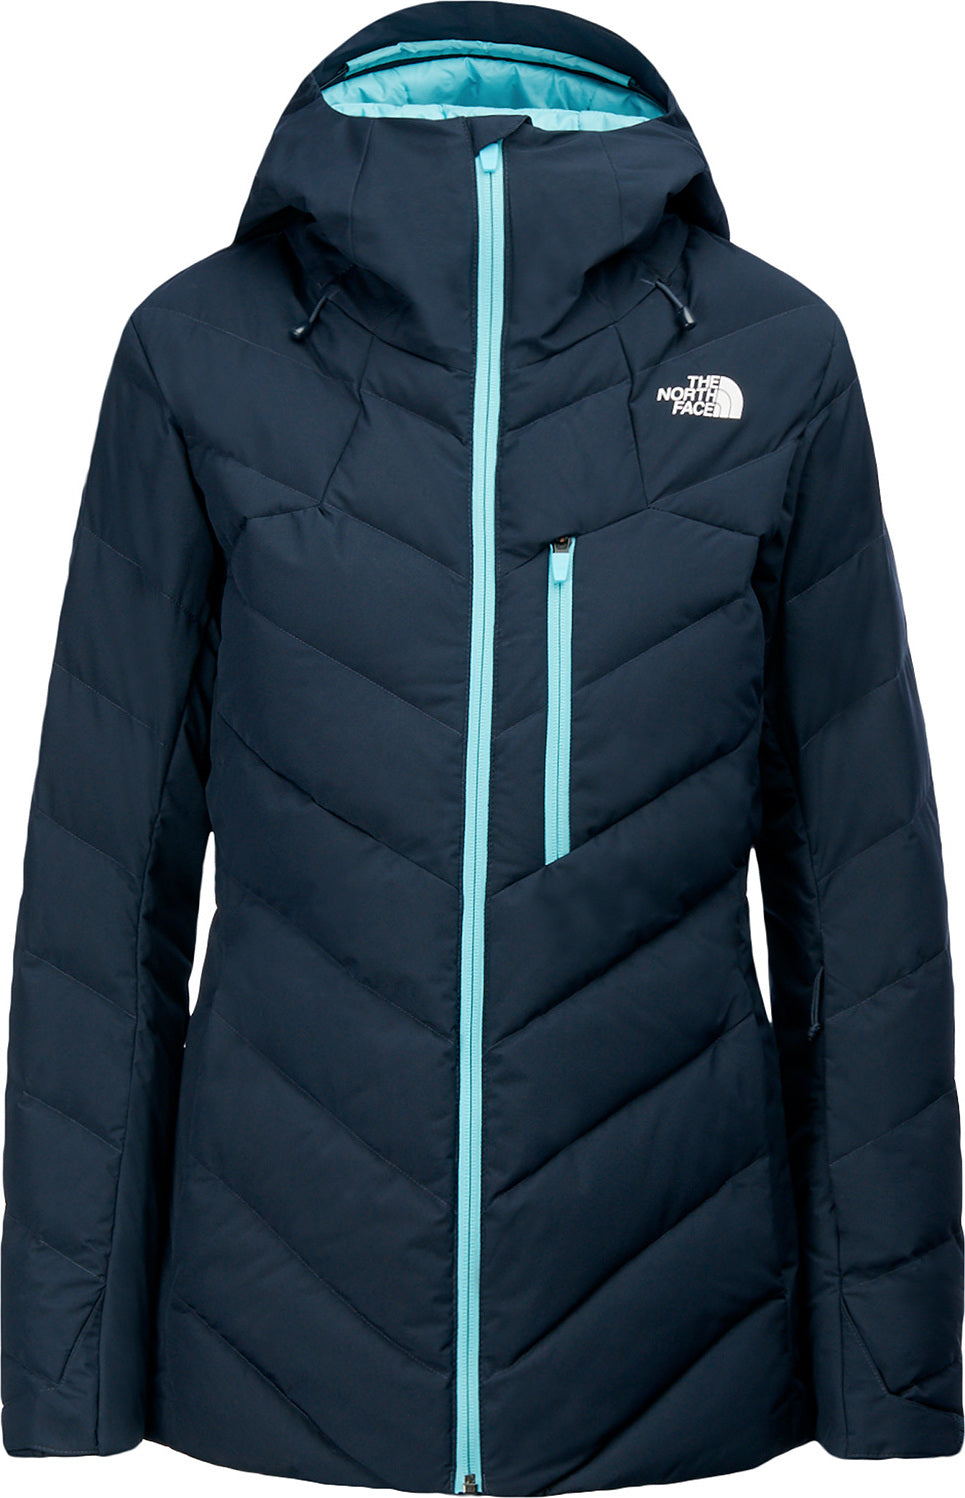 47d3f87f0 The North Face Women's Corefire Down Jacket